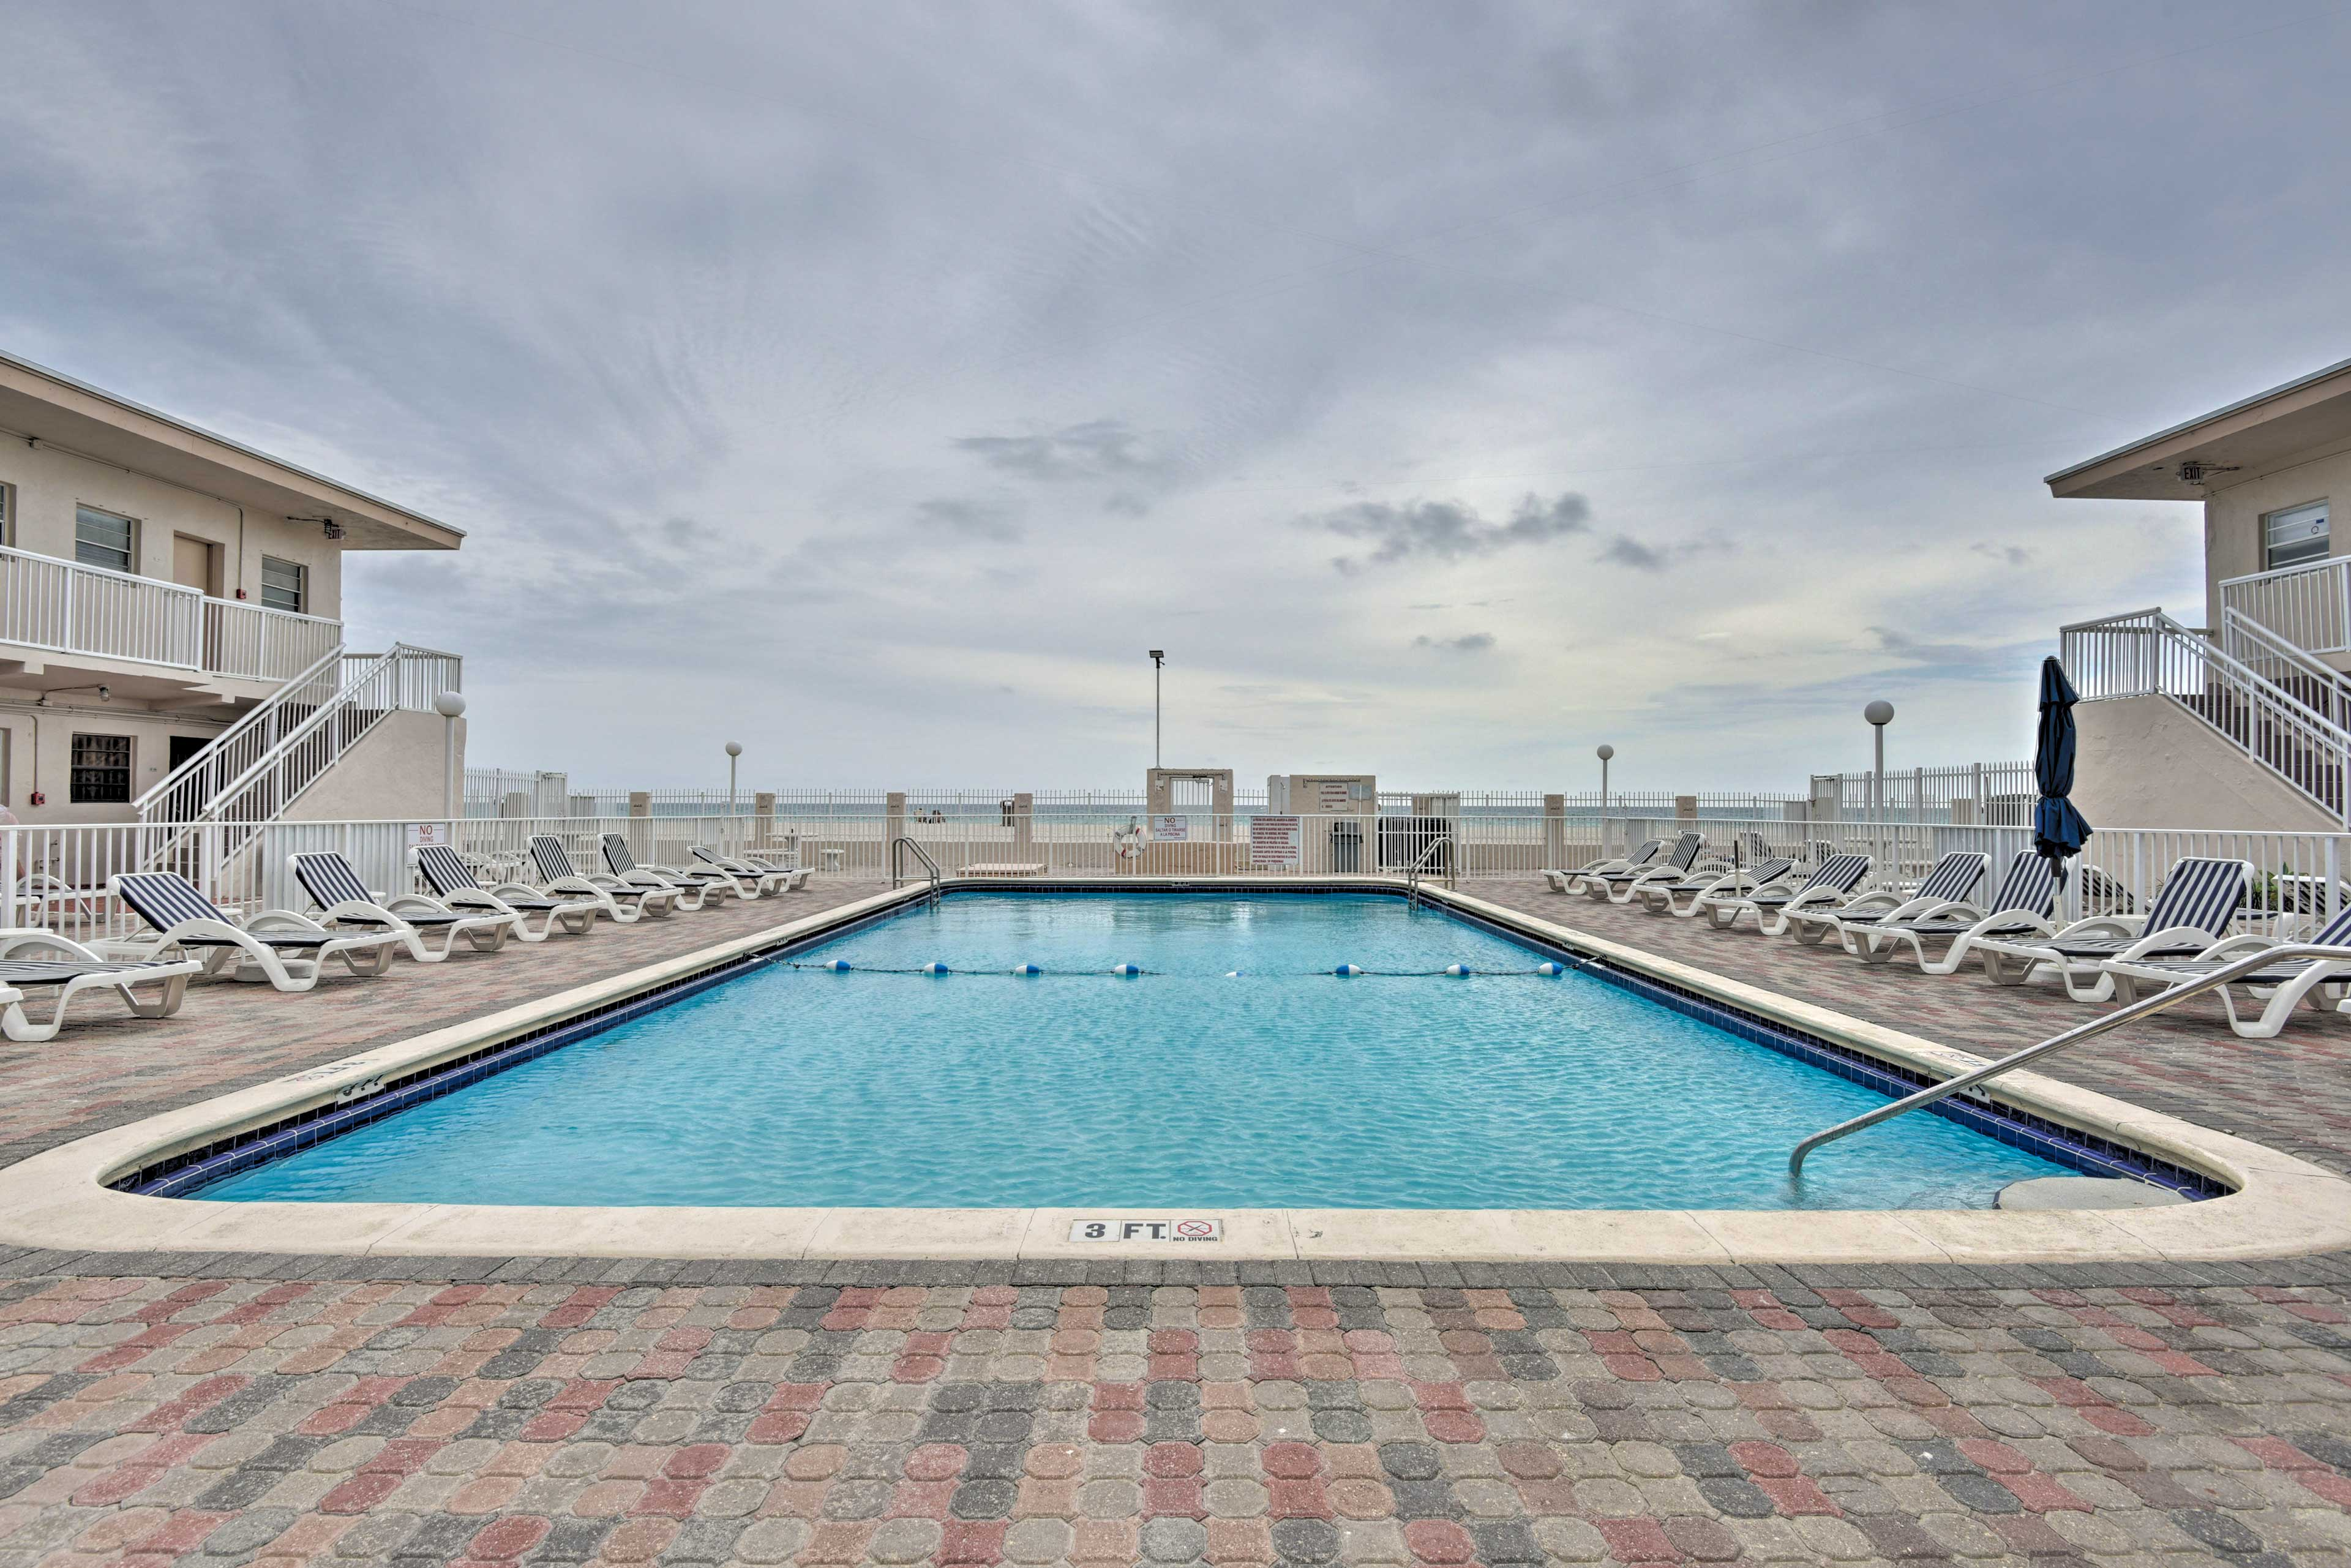 Dive into relaxation in this oceanfront pool.